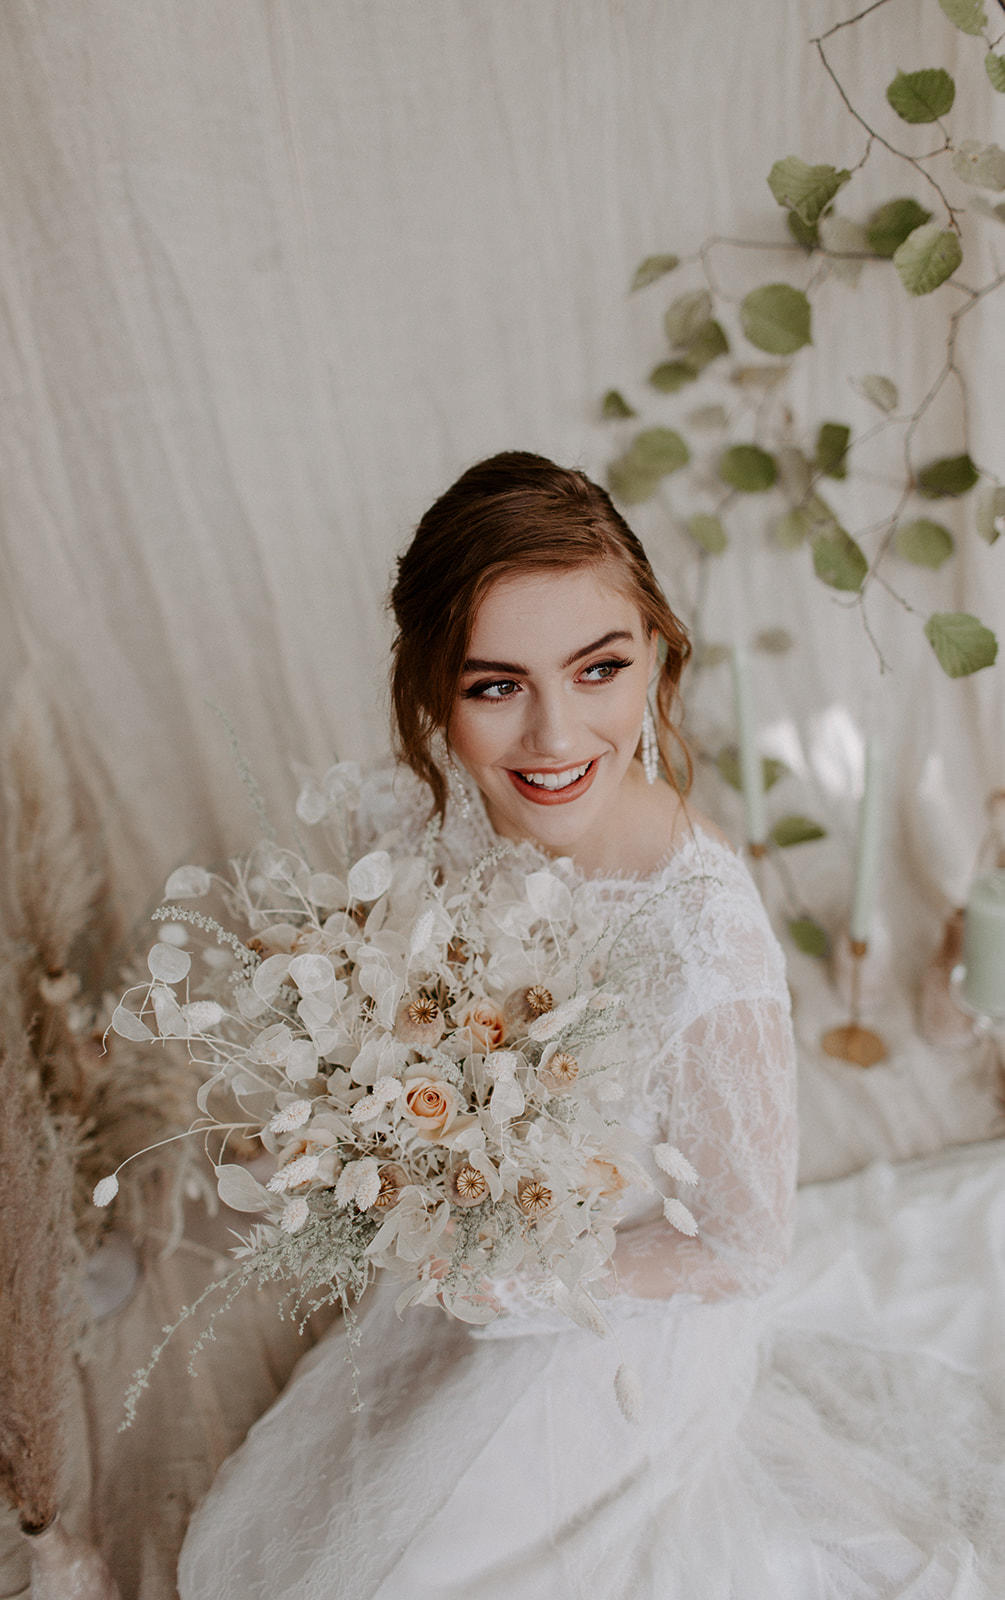 Modern, luxe bridal hair and makeup on smiling bride holding dried floral bouquet.